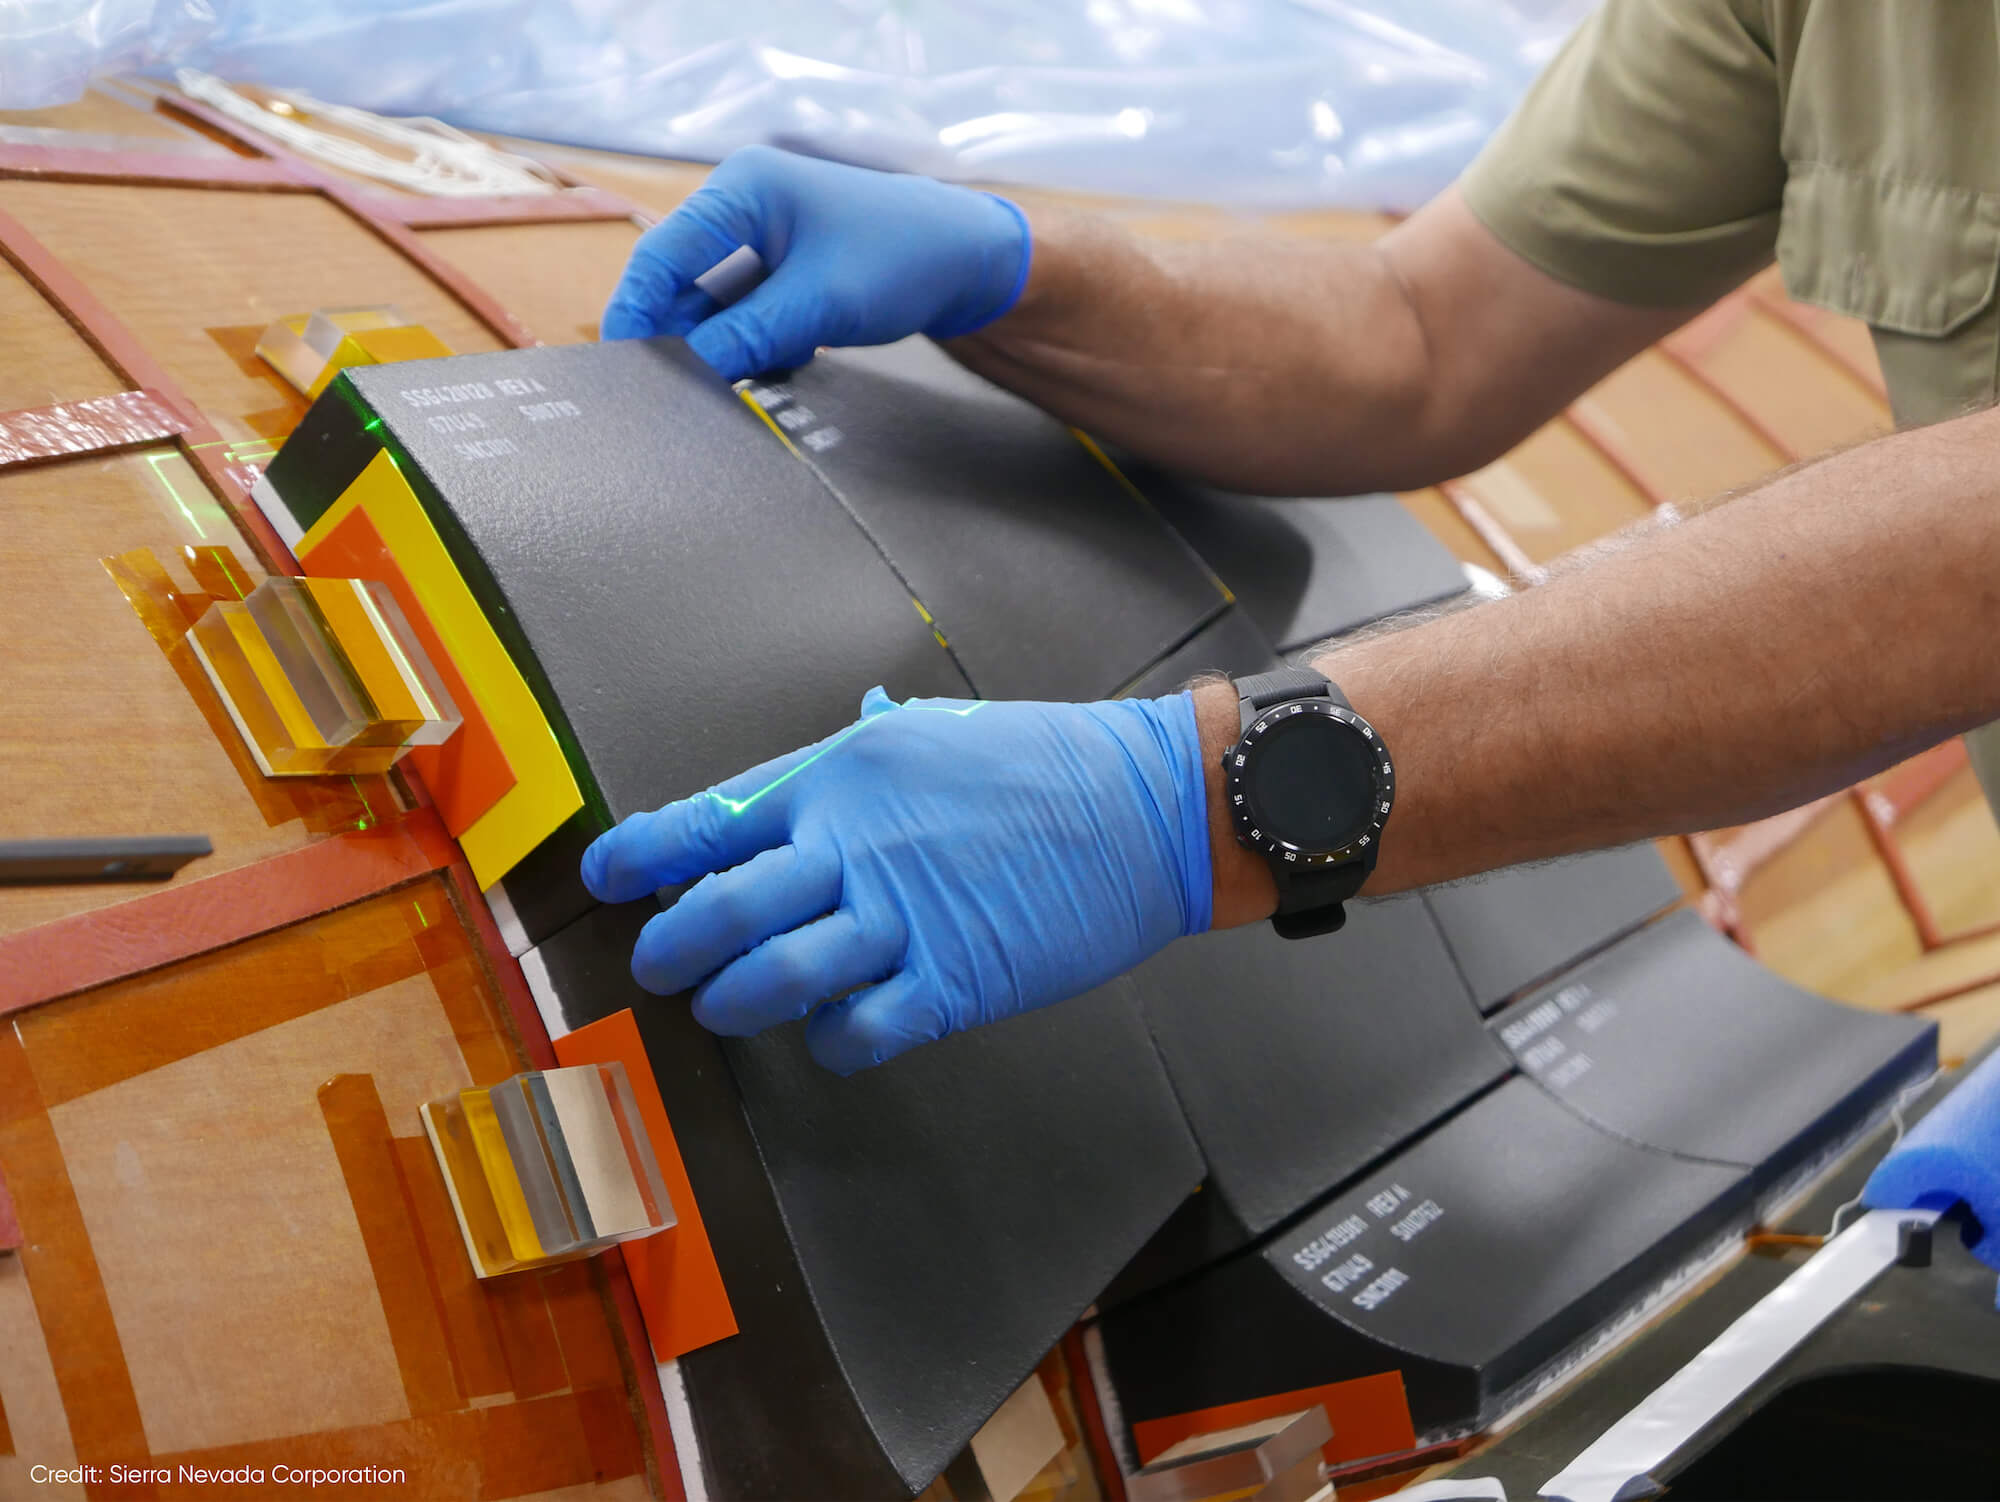 Bonding the Thermal Protection System tiles to the Dream Chaser structure